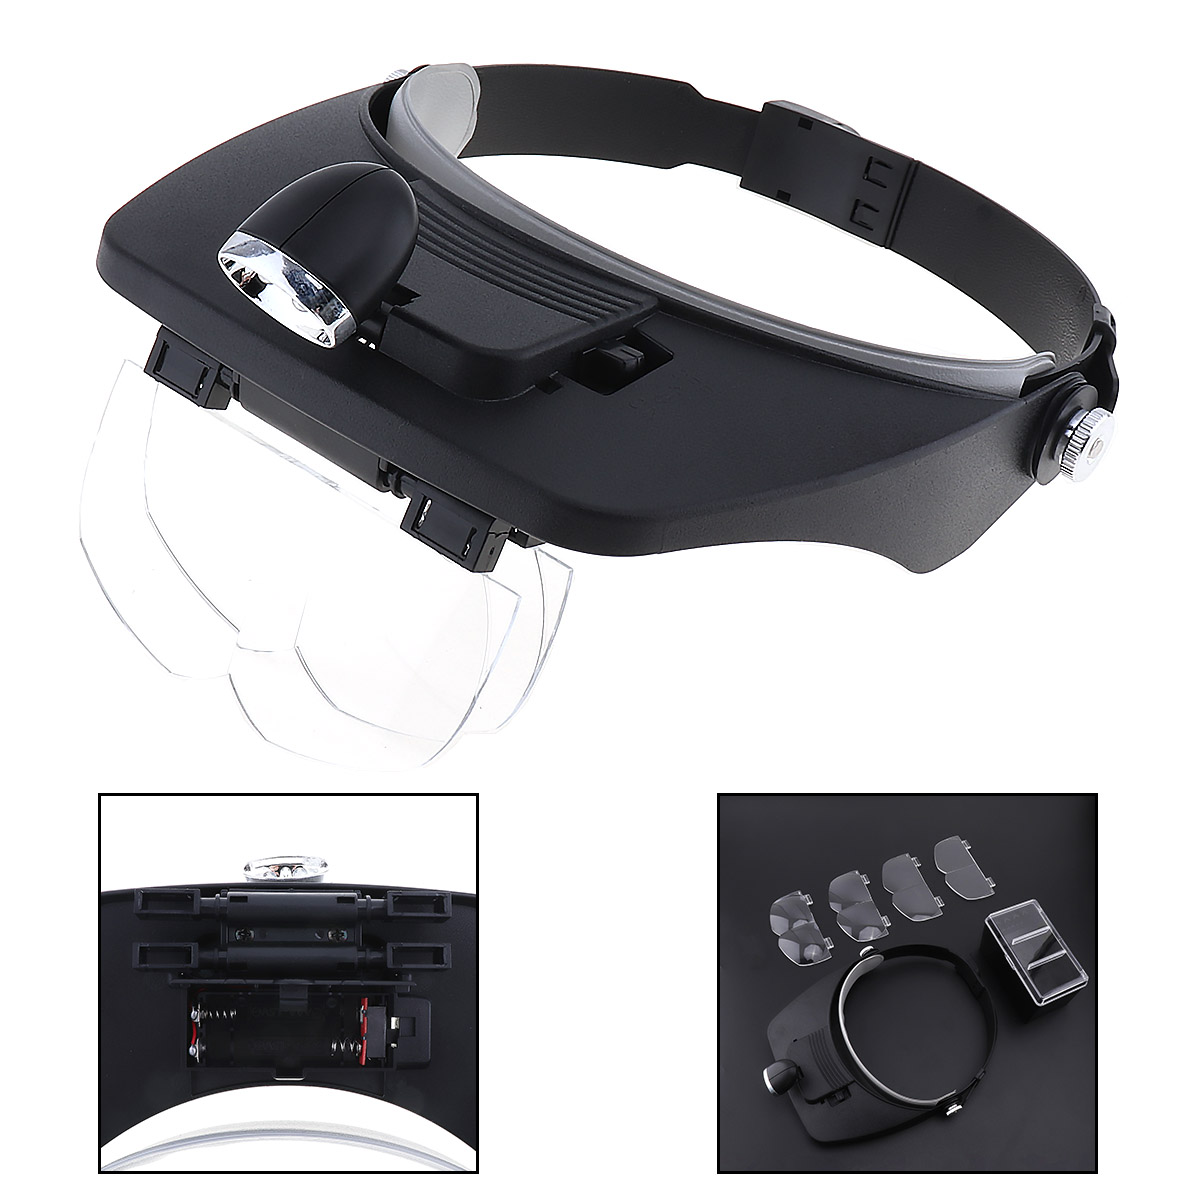 New 7X Headband Type Magnifying Glass with LED Light and 4 Magnifying Lens for Jewel Repair